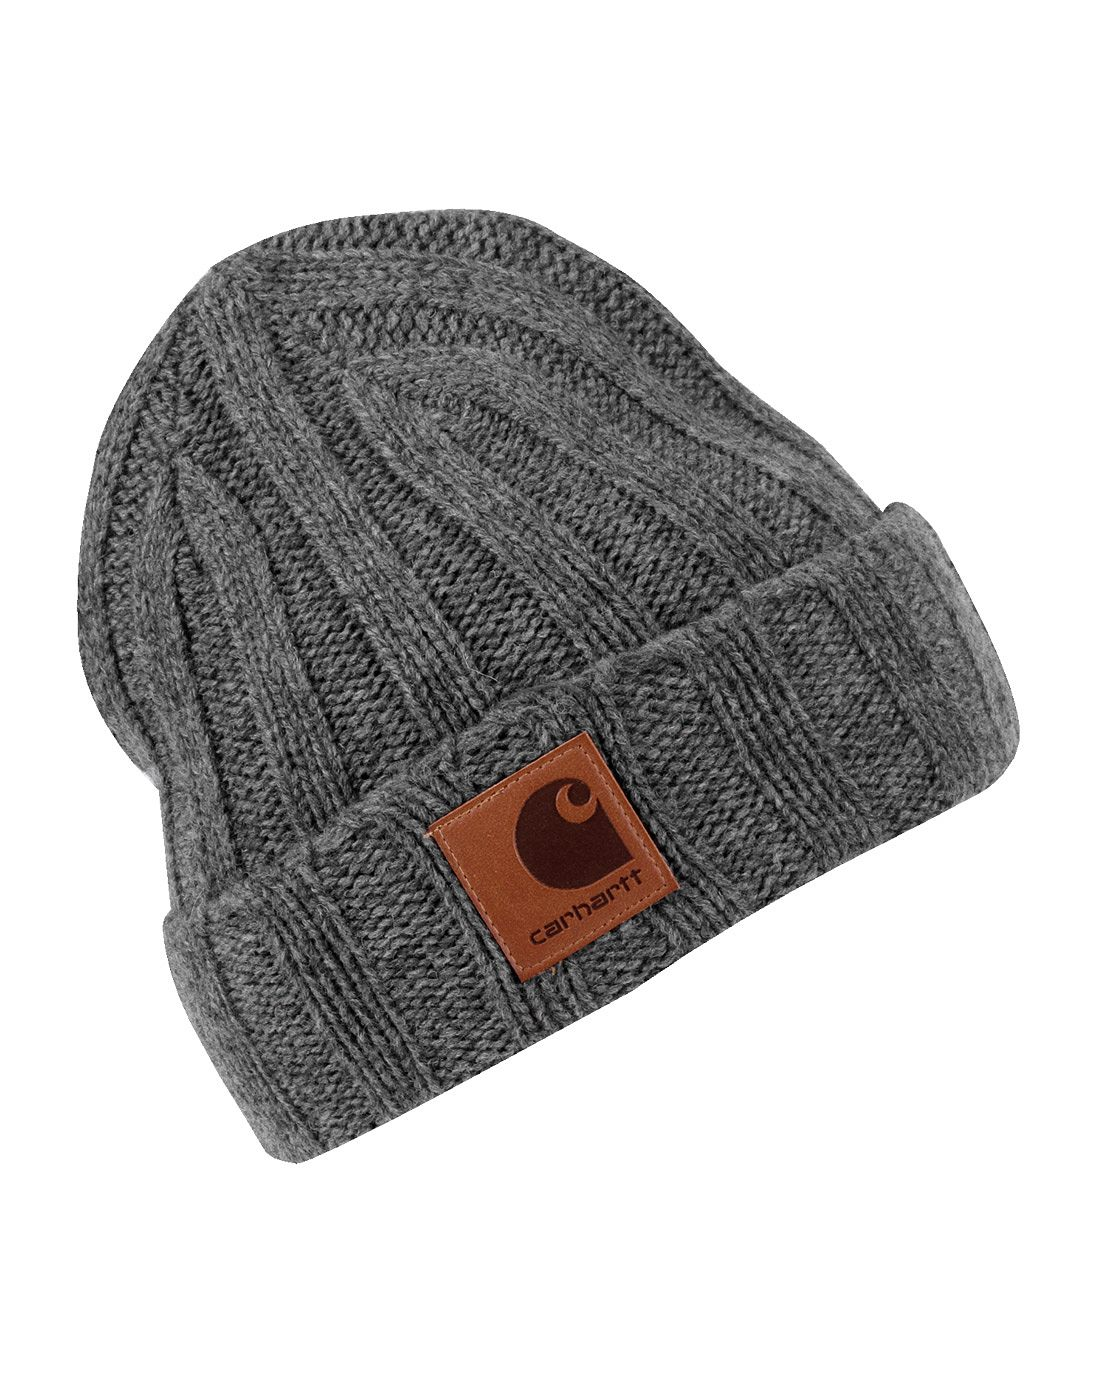 ce5762343cea0 custom beanies.ZYCAPS is a chinese caps manufacturer since 1992